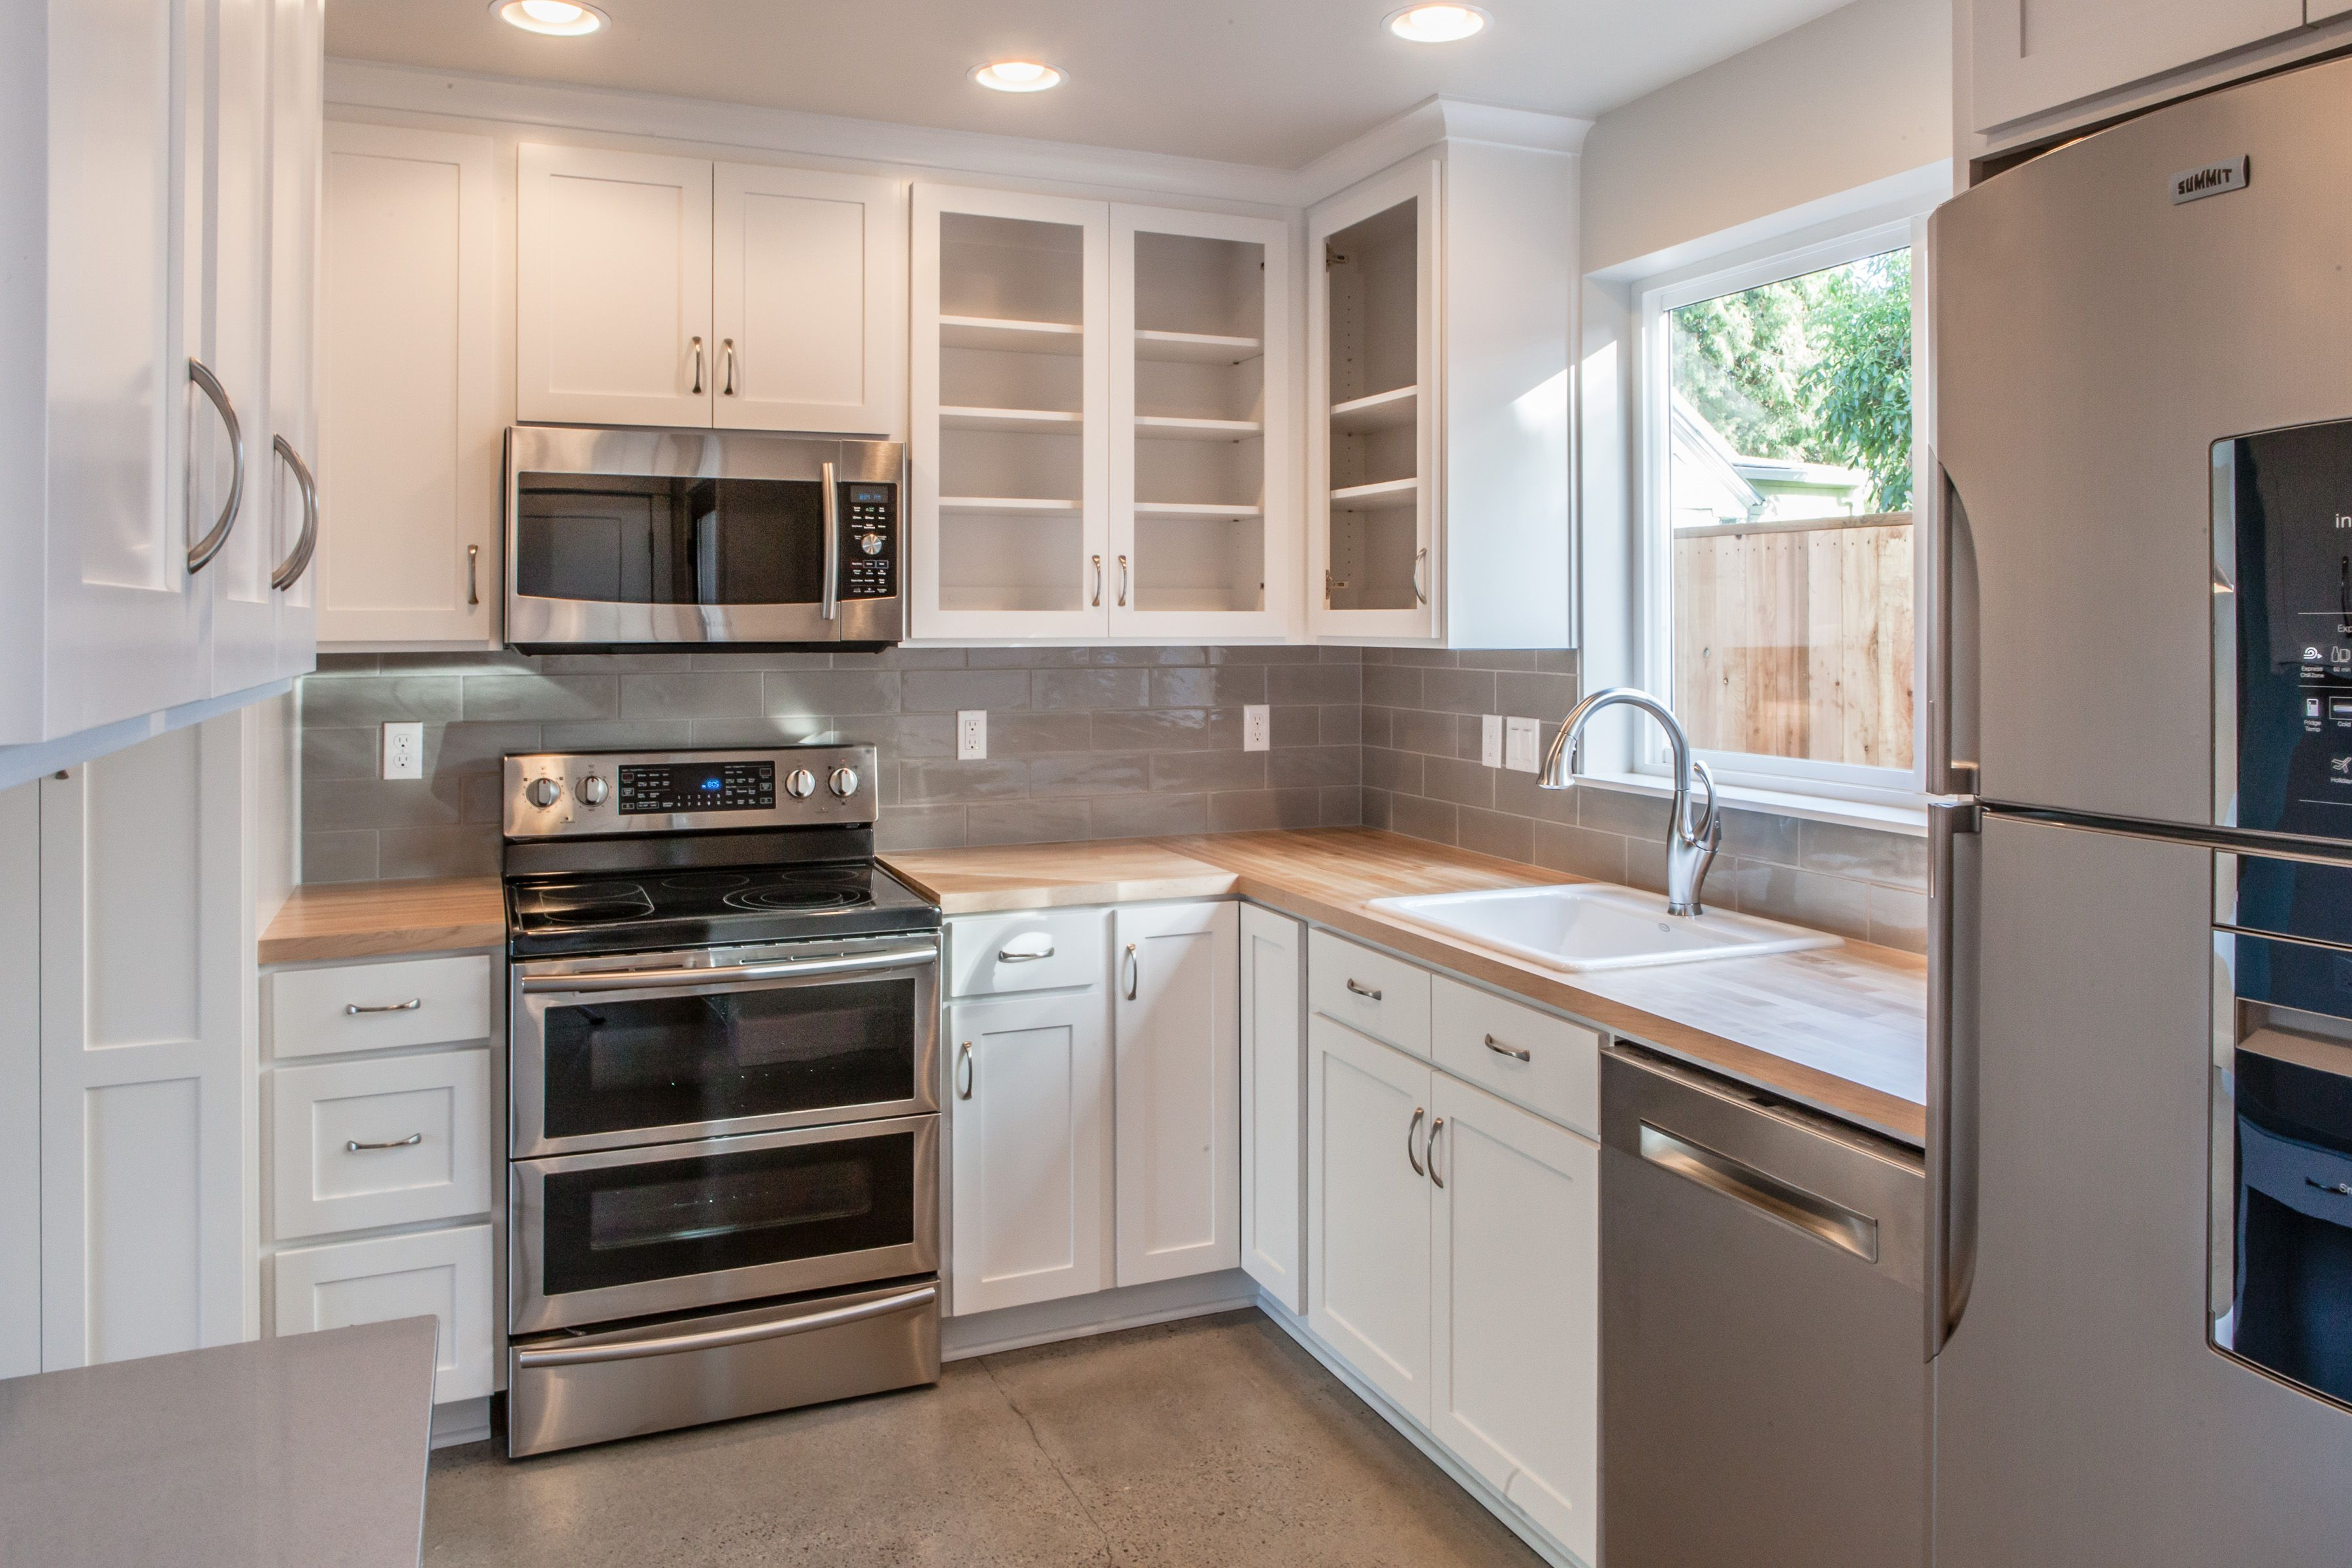 White Cabinets Butcher Block Counter Small Kitchen Stainless Steel Appliances Concrete Floor Michael Lindberg Kitchen Small Kitchen Butcher Block Counter